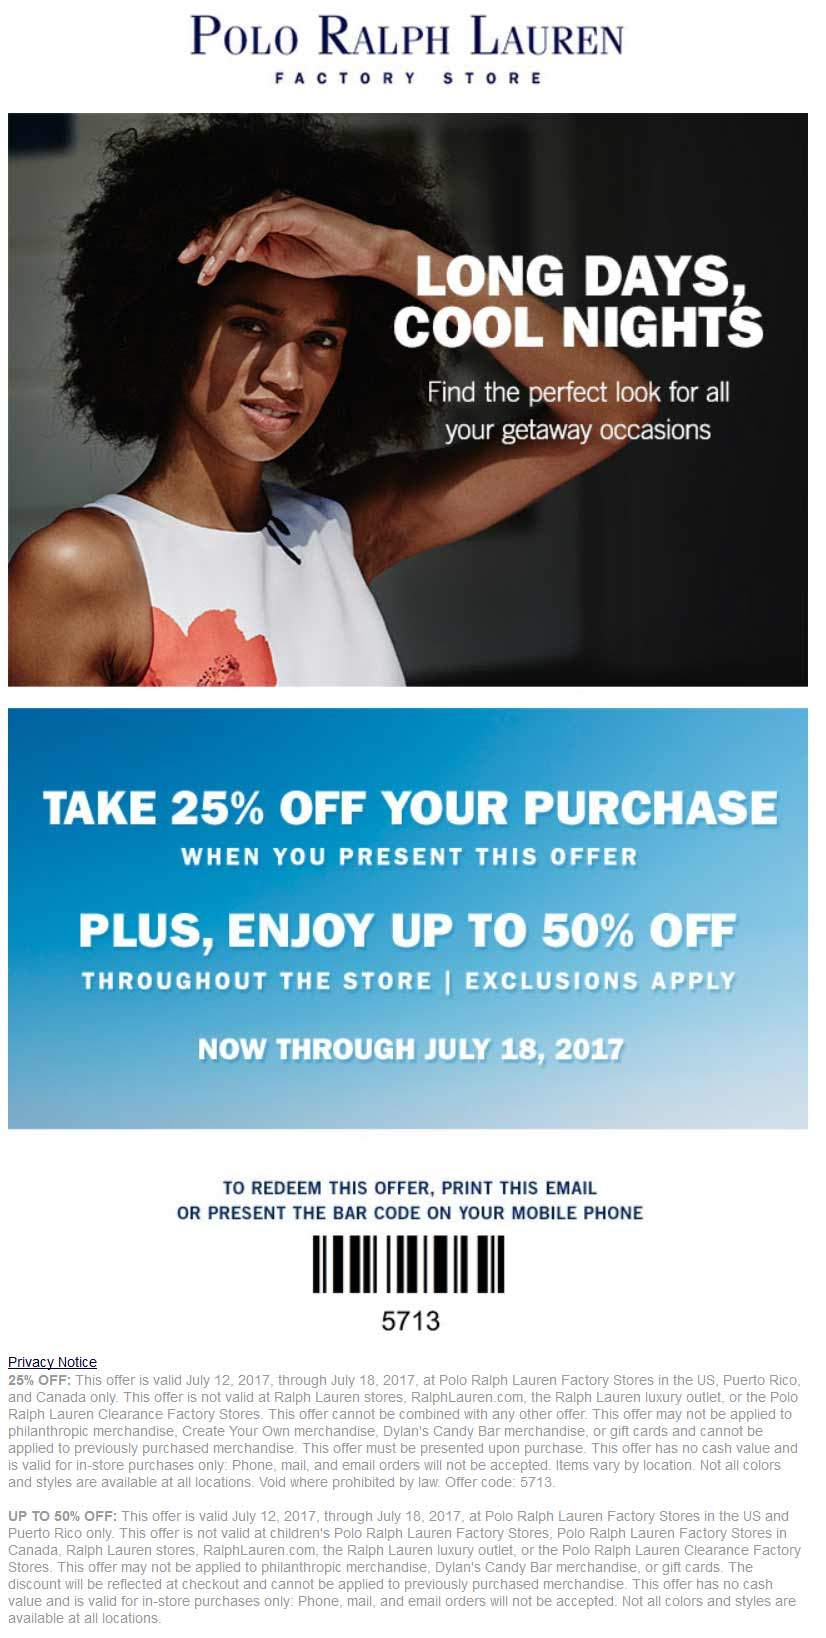 Polo Ralph Lauren Factory Coupon March 2018 25% off at Polo Ralph Lauren Factory stores